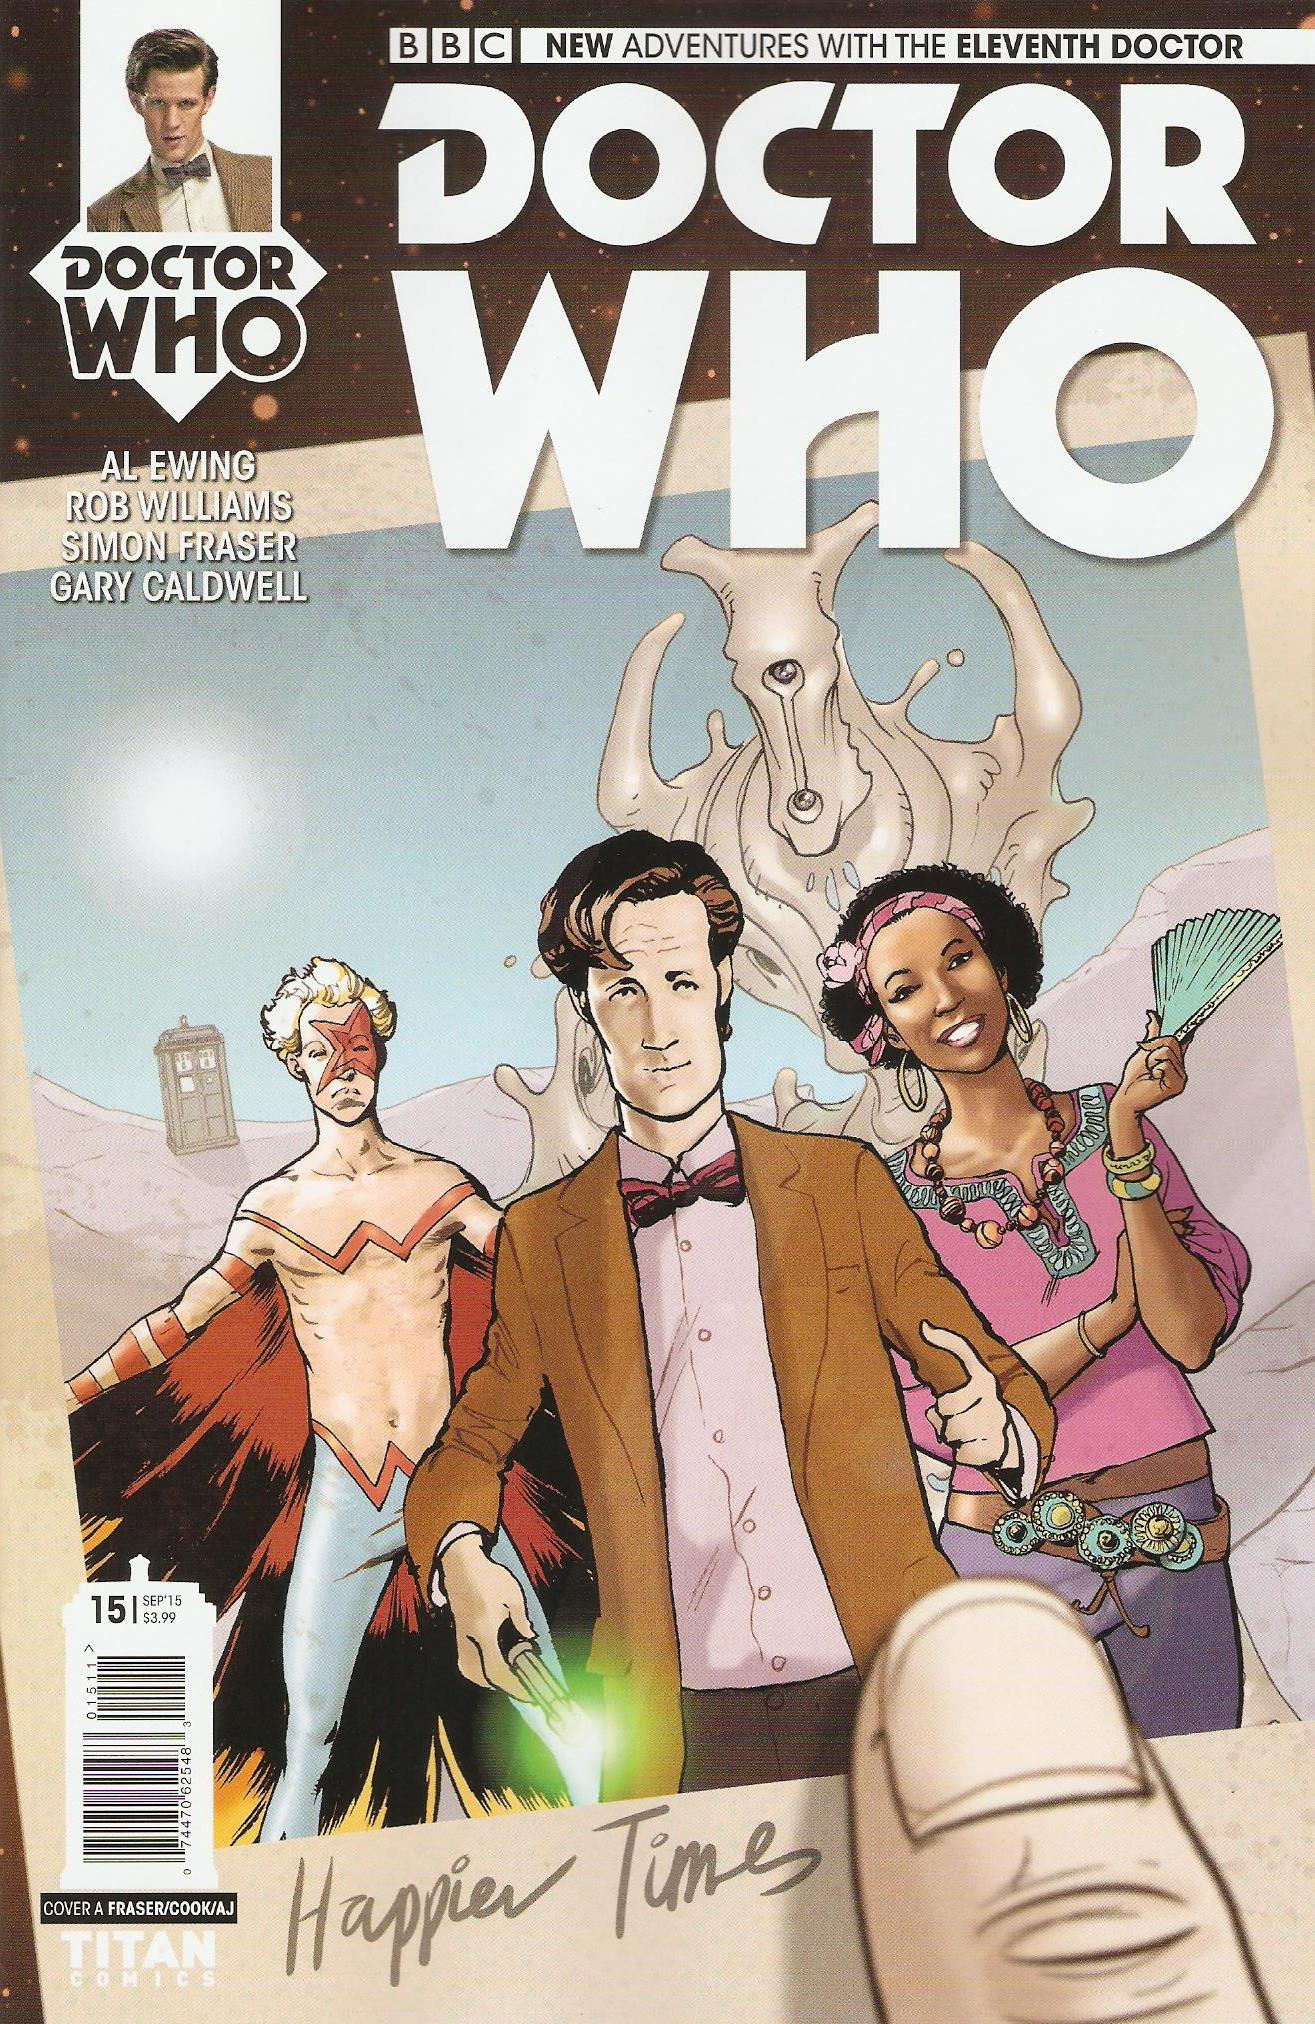 Eleventh doctor issue 15a